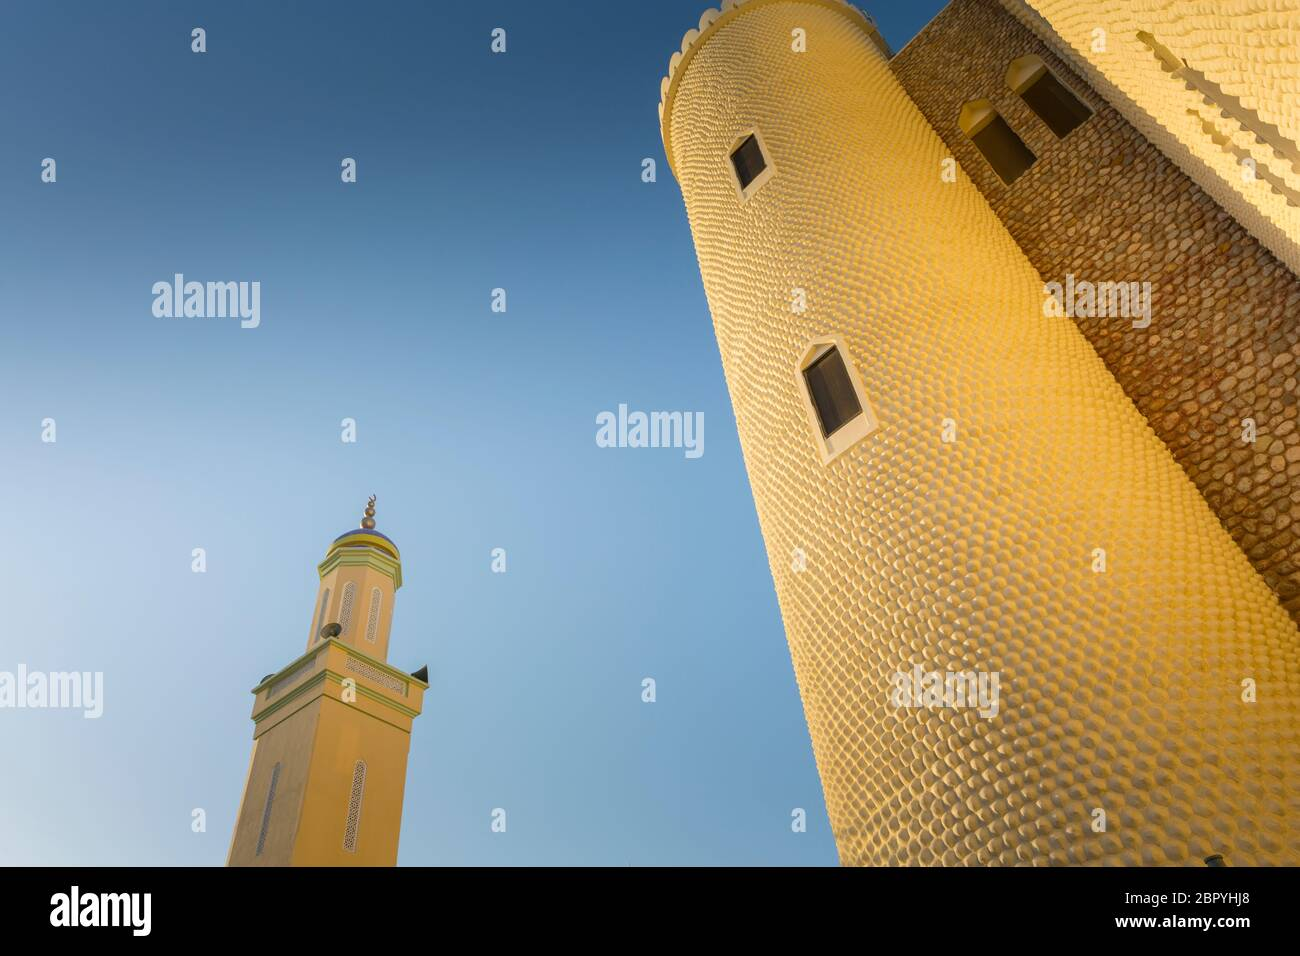 Evening view of mosque in the Muttrah Souk, Muscat, Oman, Middle East, Asia Stock Photo